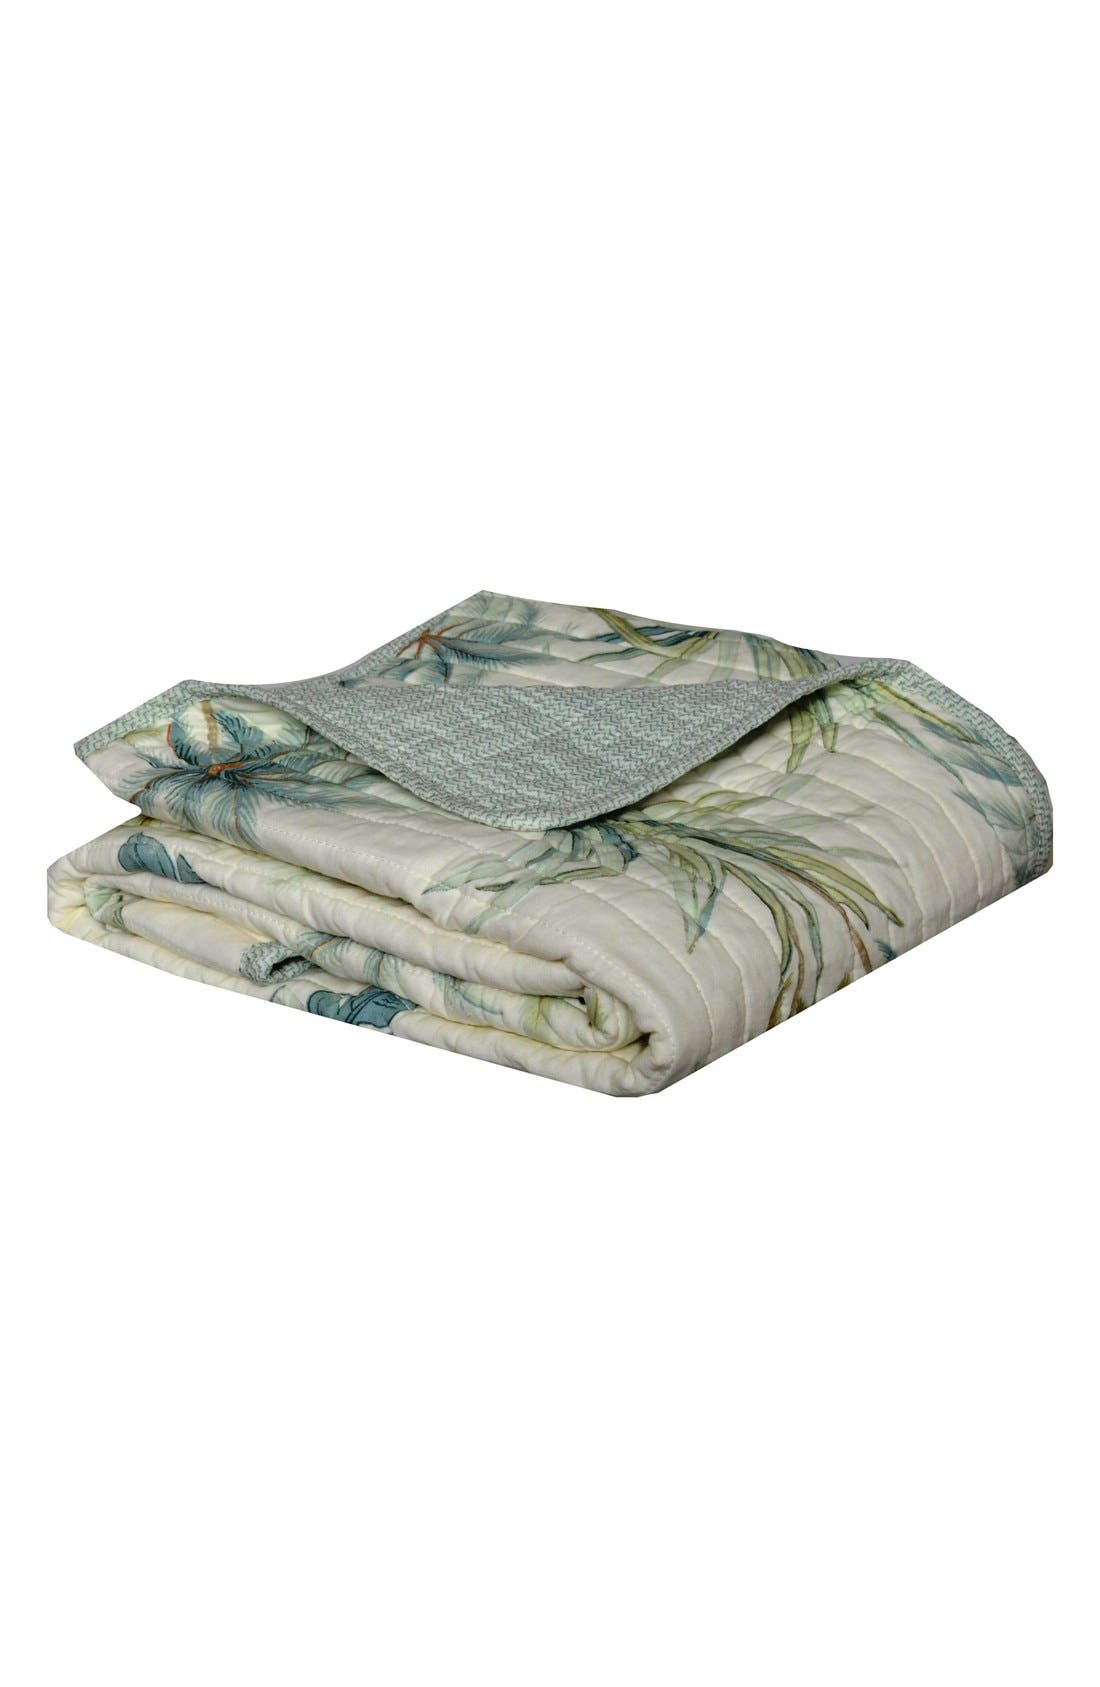 Alternate Image 1 Selected - Tommy Bahama Serenity Palms Quilted Throw